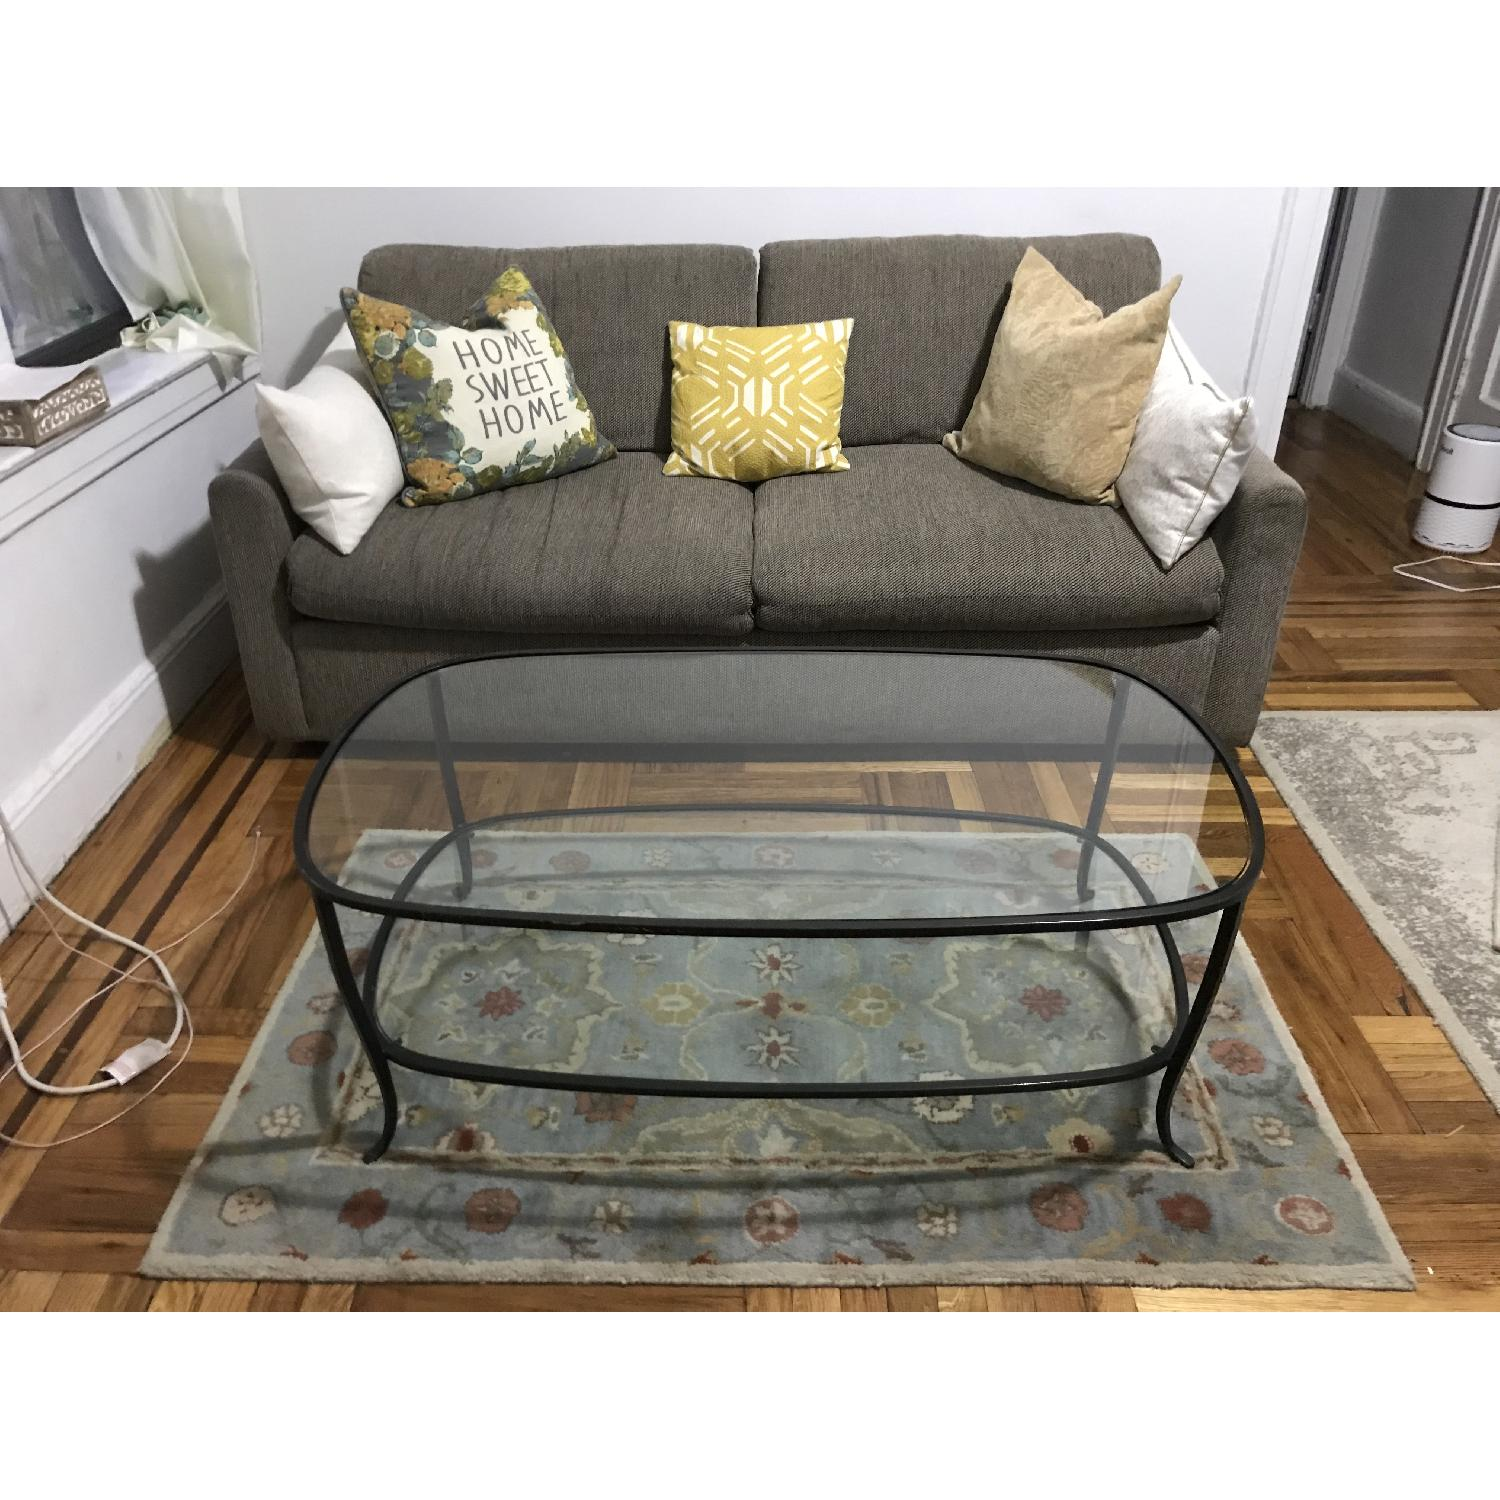 Pottery Barn Glass w/ Cast Iron Frame Coffee Table-4